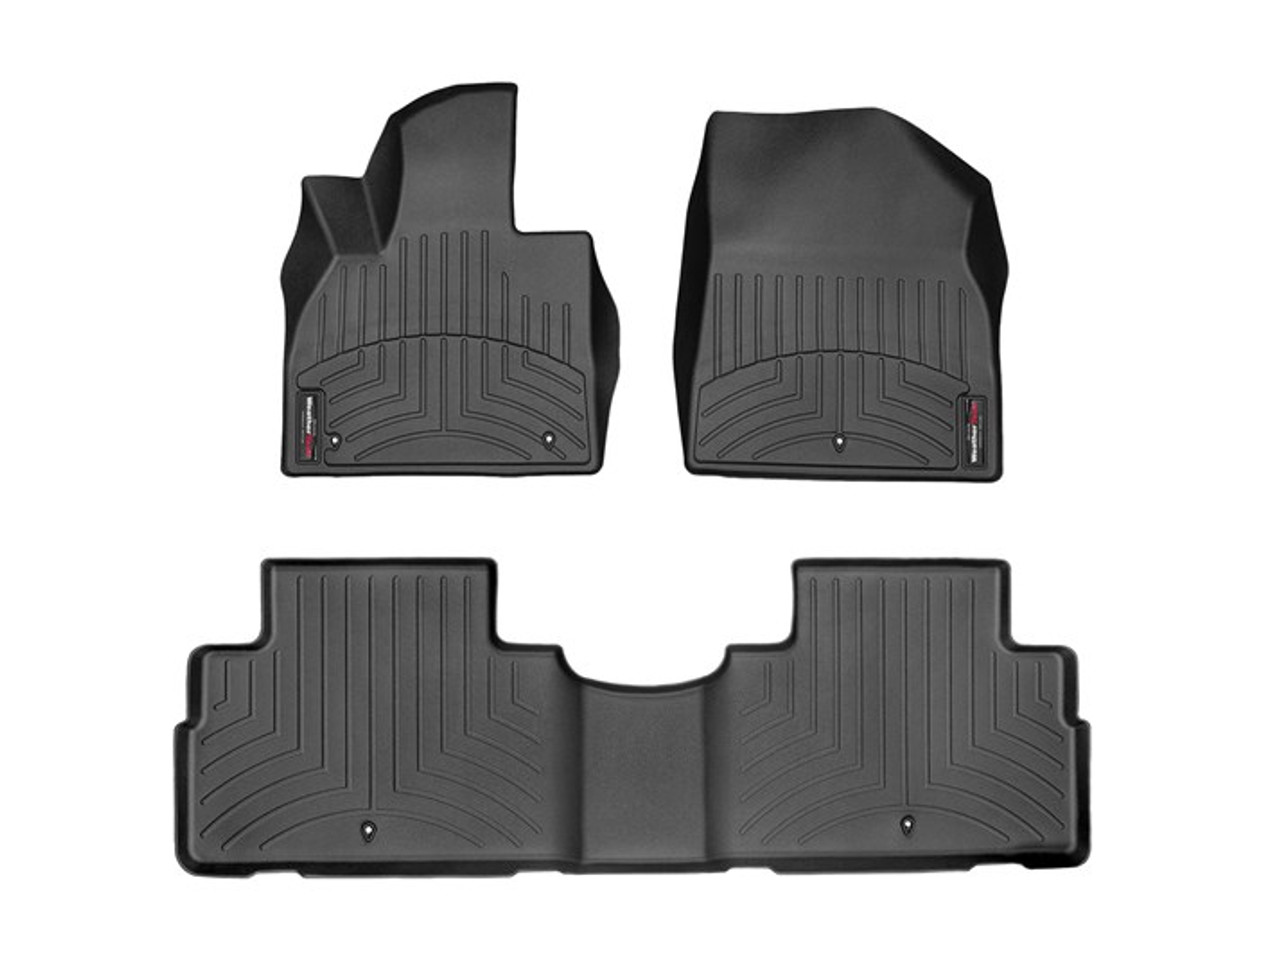 2020-2021 Hyundai Palisade WeatherTech Floor Liners - First and Second Row (Black)